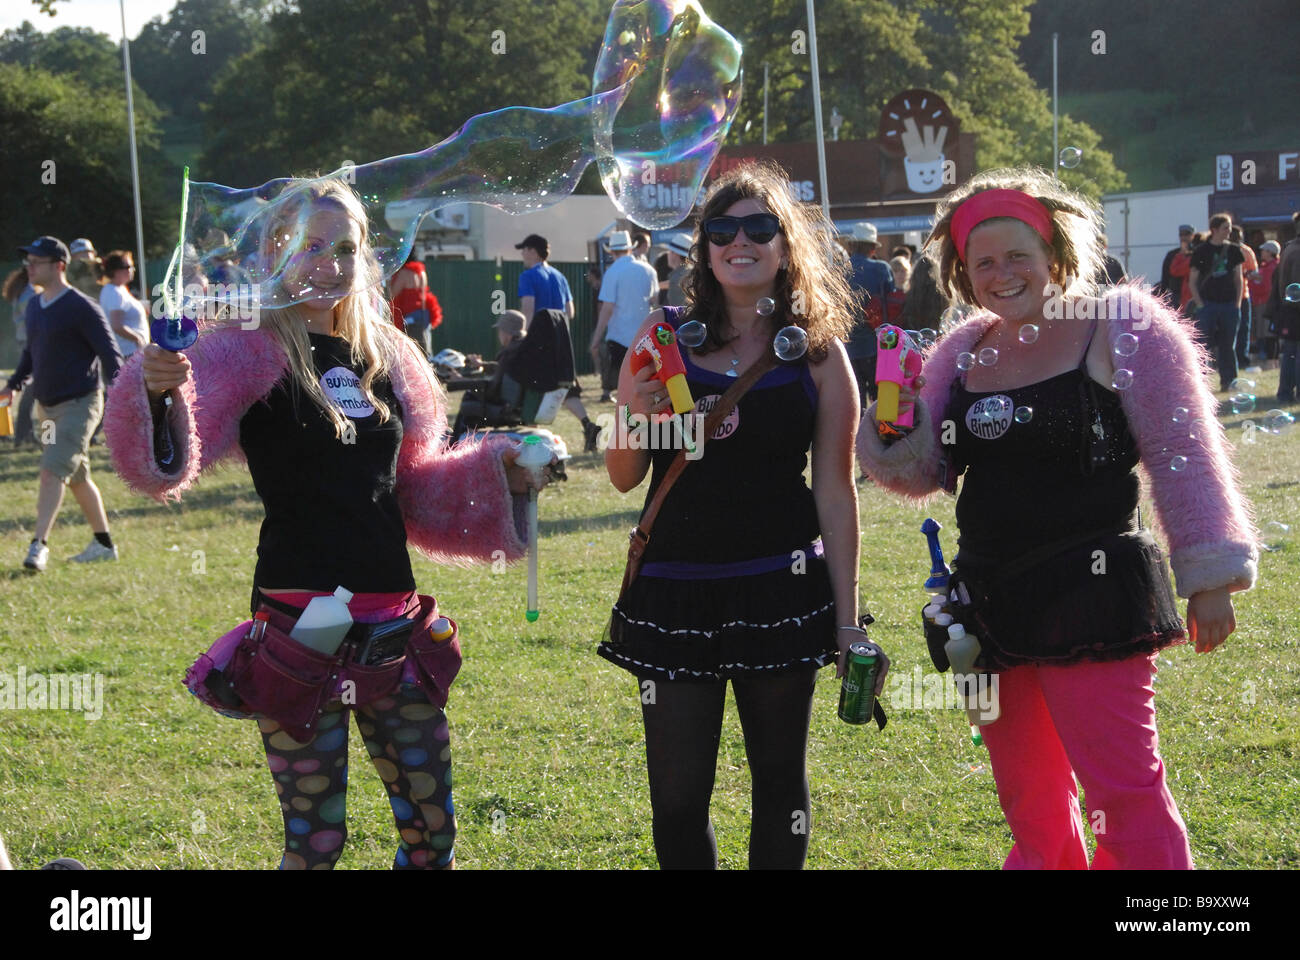 Three girls and huge bubble at Big Chill Music Festival - Stock Image